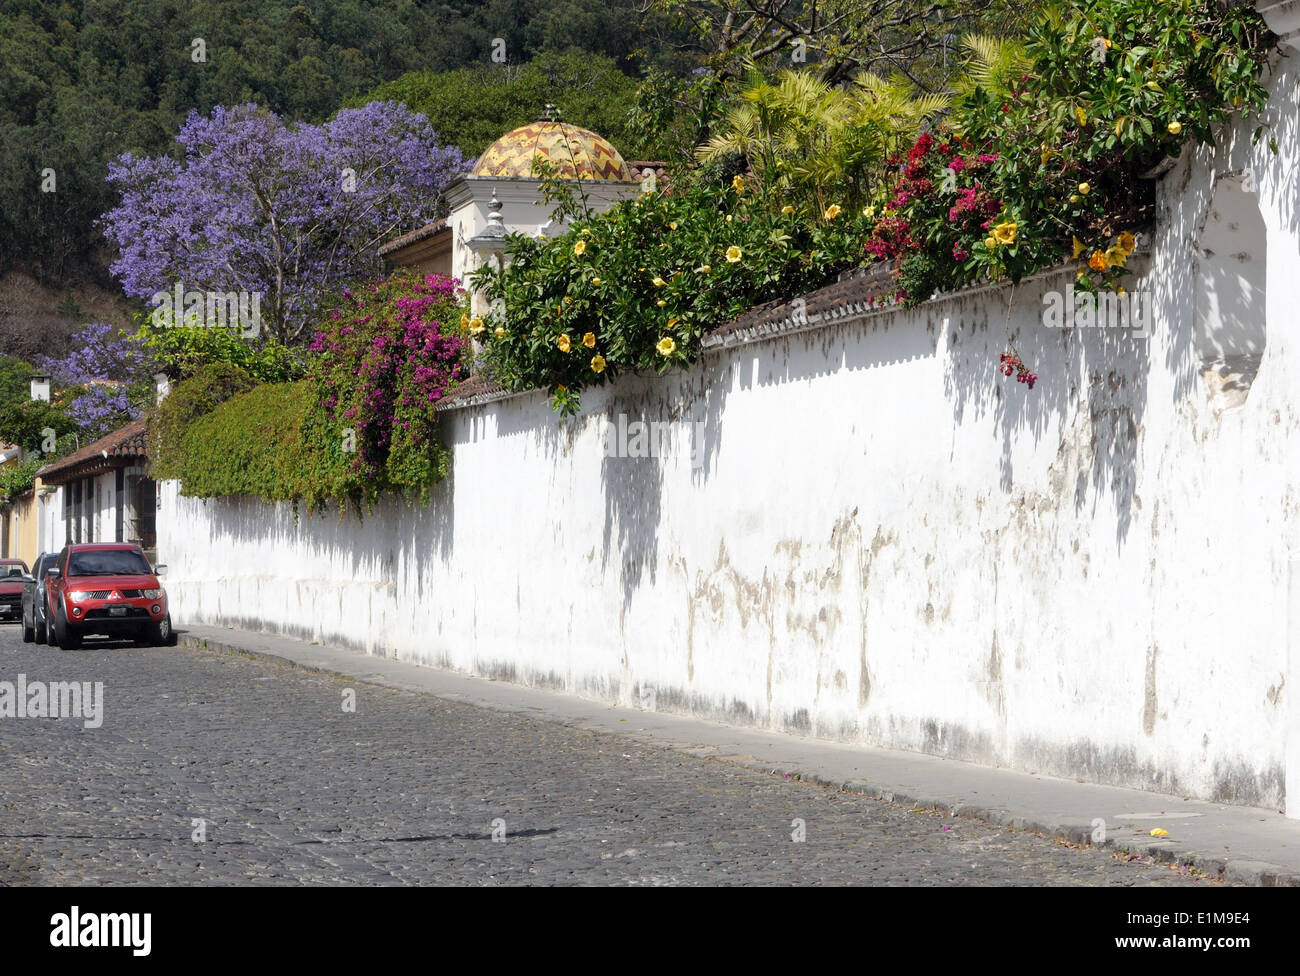 Flowering shrubs and climbers tumble over a white garden wall Stock